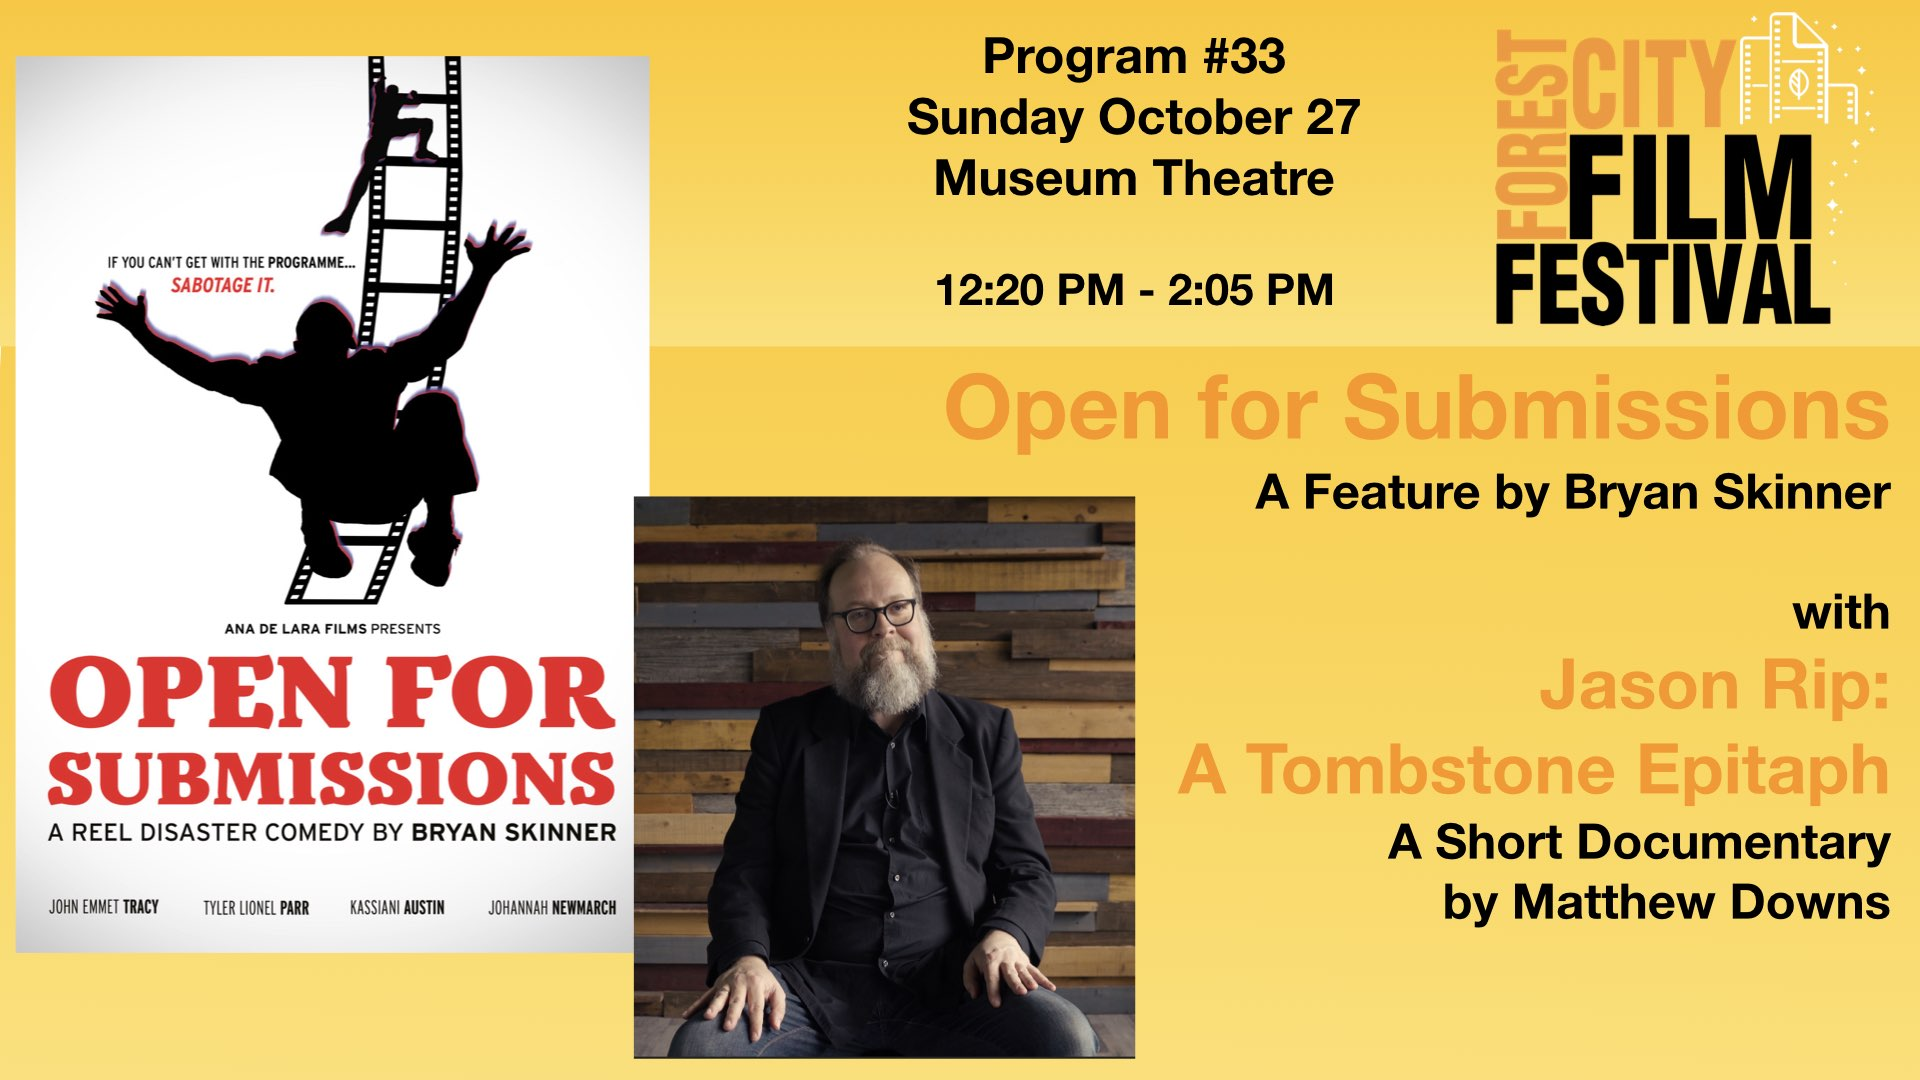 FCFF 2019 - Sunday early afternoon at  Museum Theatre #33 - Open for Submissions with Jason Rip: A Tombstone Epitaph